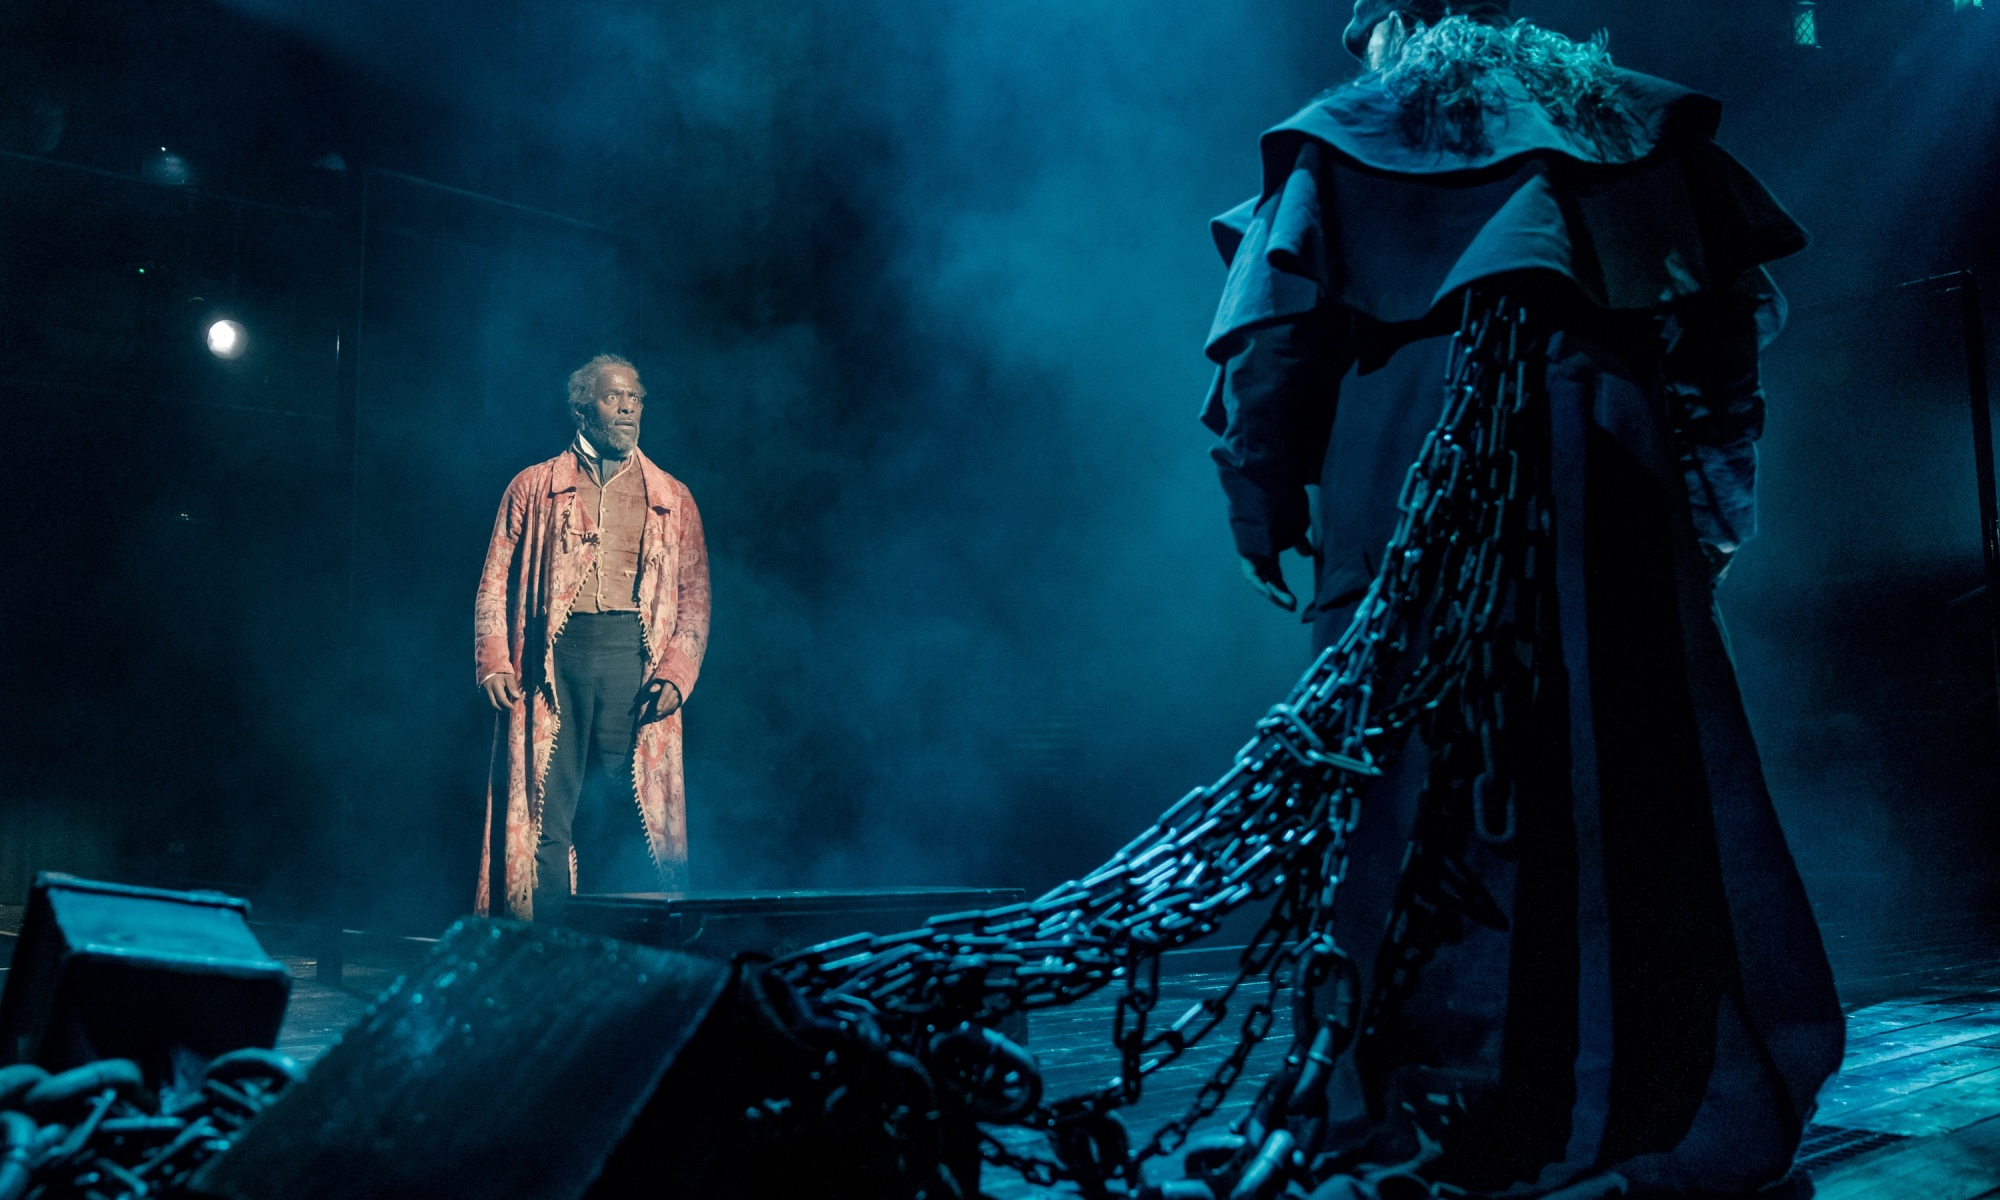 Jacob Marley has his back to the camera, which has chains coming out of it. He's talking to Scrooge, who is at the other end of the stage, with a shocked expression on his face.